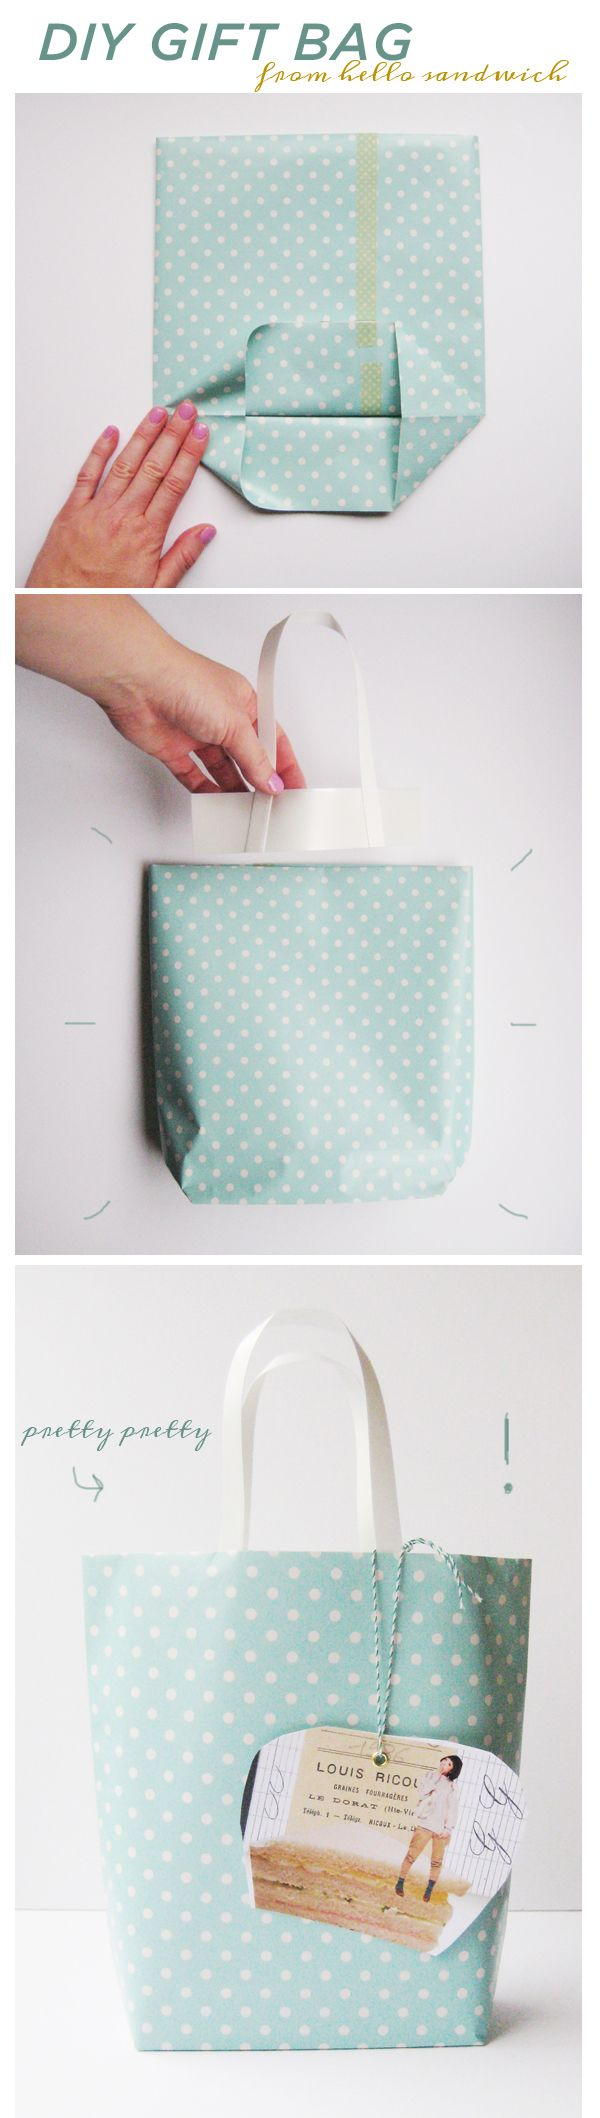 diy gift bagGift Bags, Bags Tutorials, Wrapping Papers, Paper Bags, Giftbags, Gift Wraps, Diy Gifts, Paper Gift, Homemade Gift